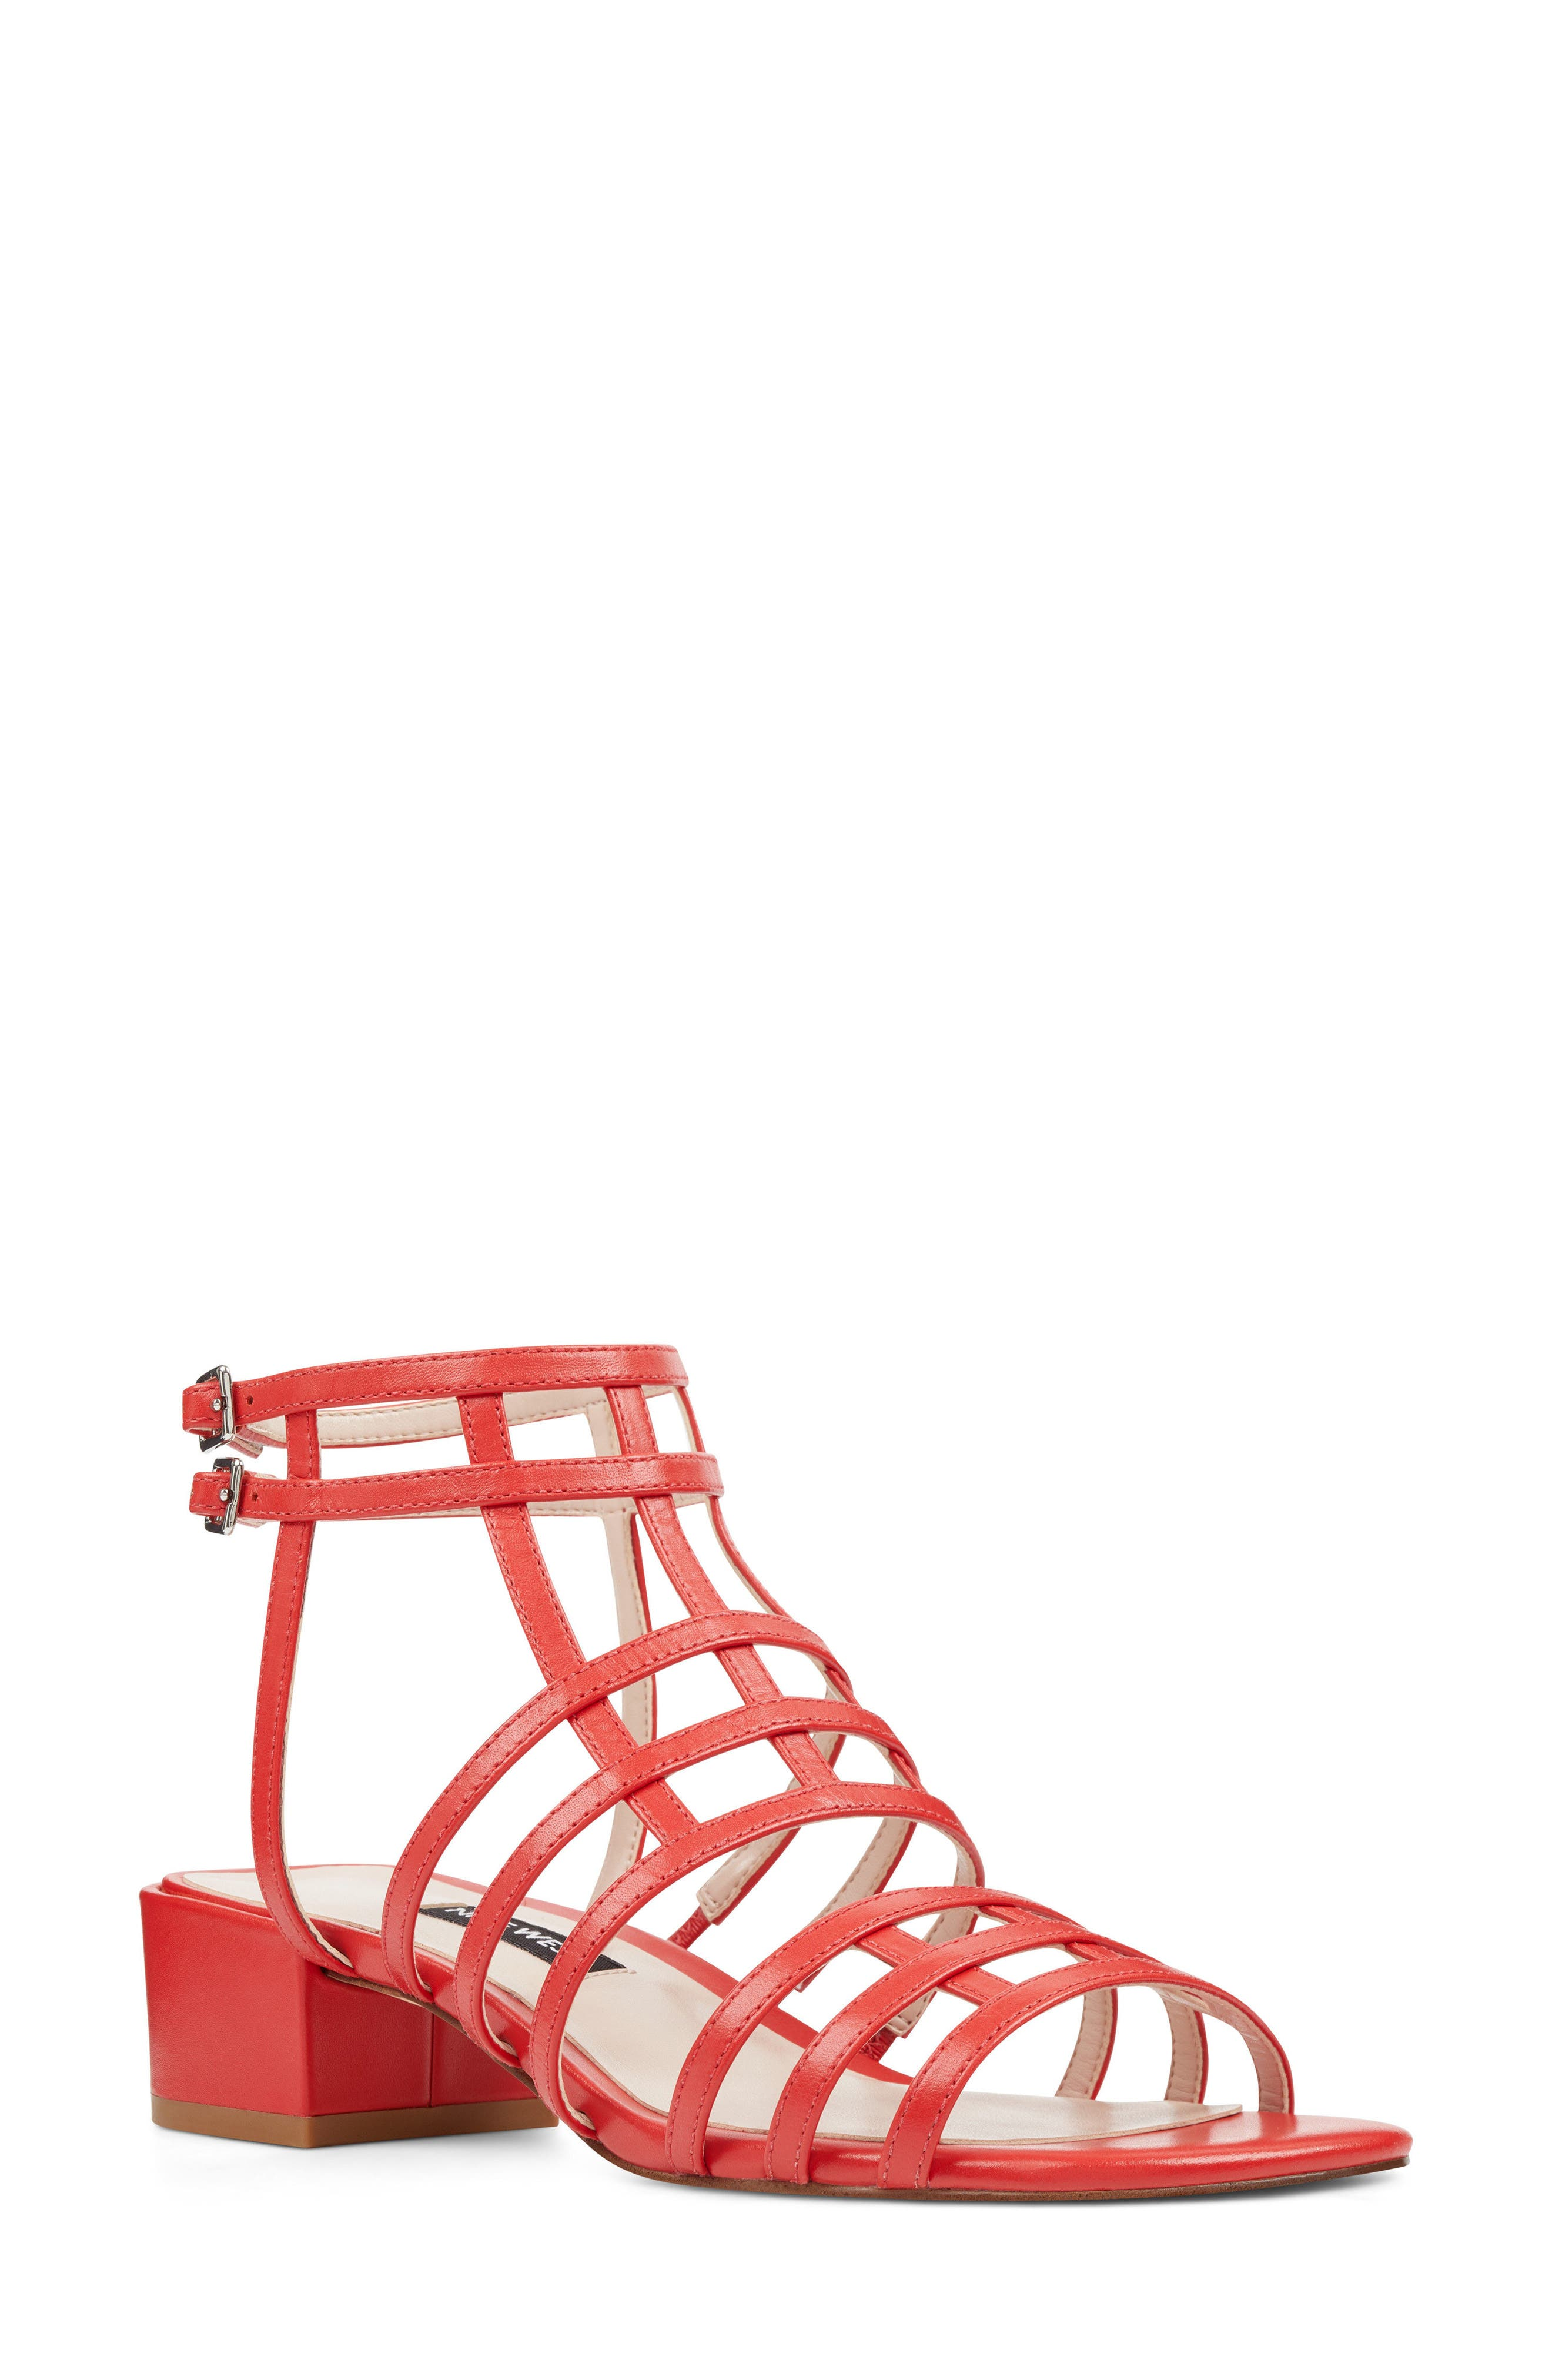 Xerxes Sandal,                         Main,                         color, Red Leather